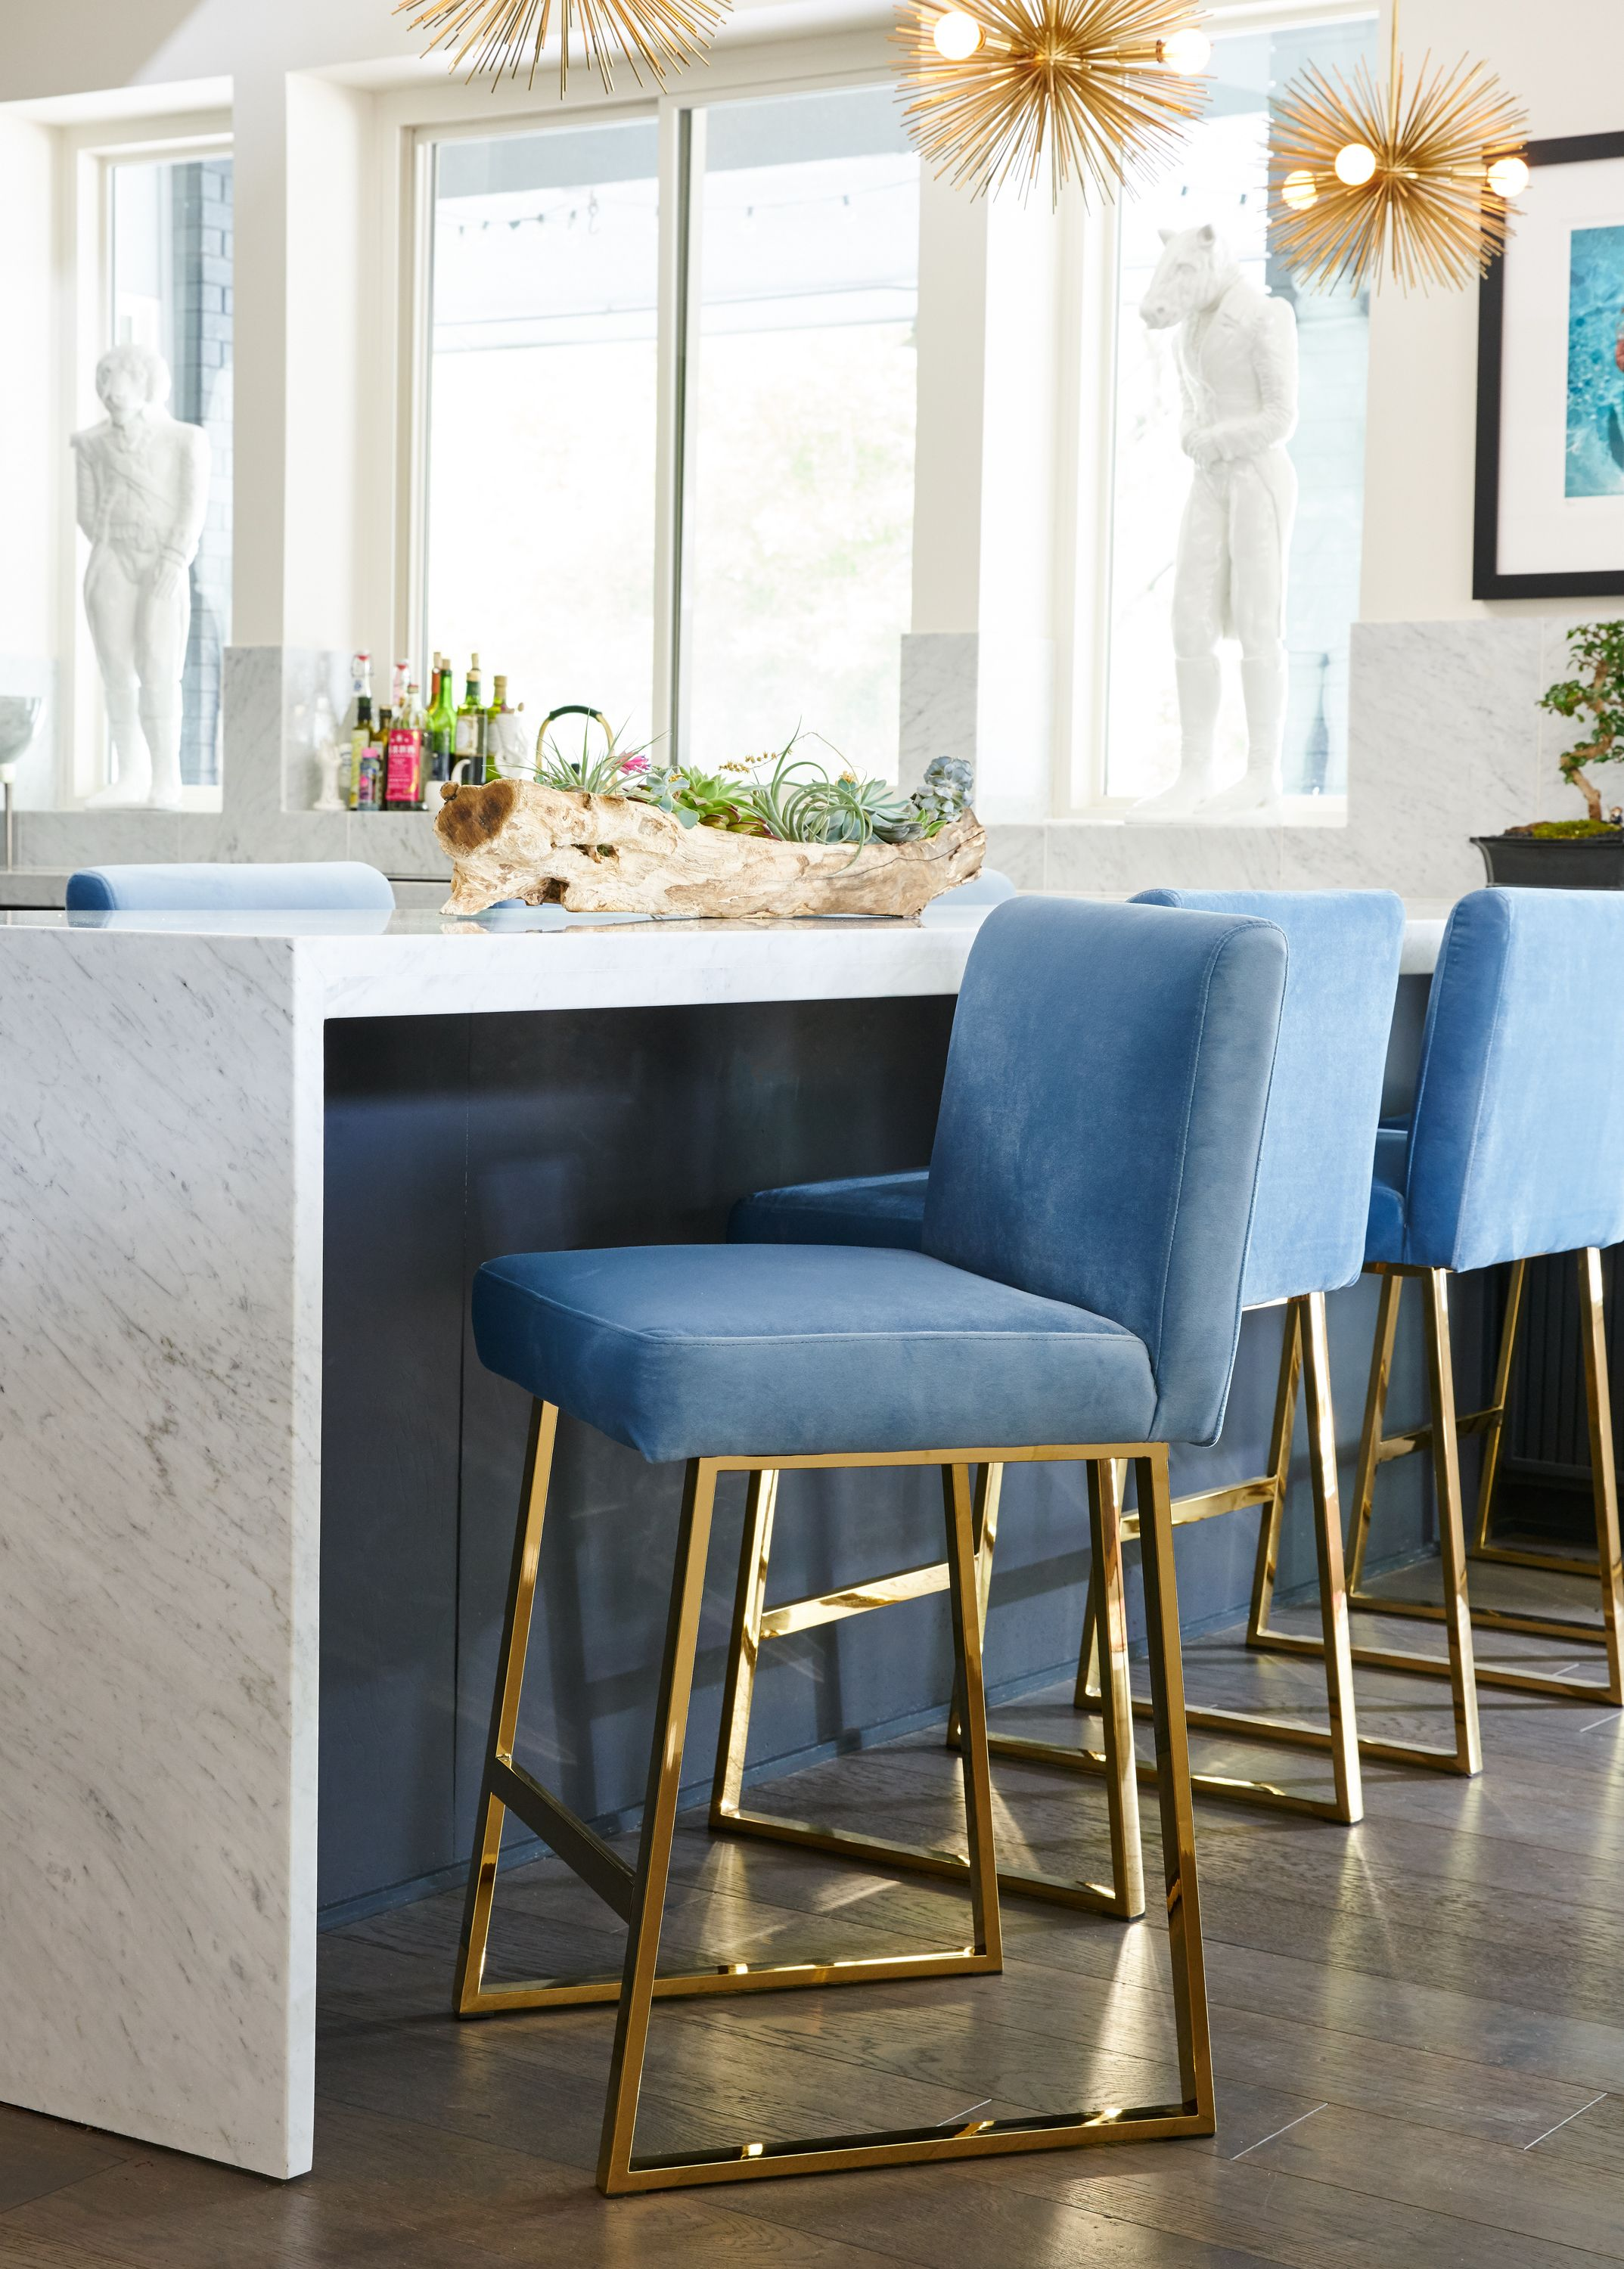 Linden Brass Counter Stool In Blue Velvet Modern Kitchen Decor In 2020 Kitchen Decor Modern Wooden Dining Room Chairs Bar Stools Kitchen Island